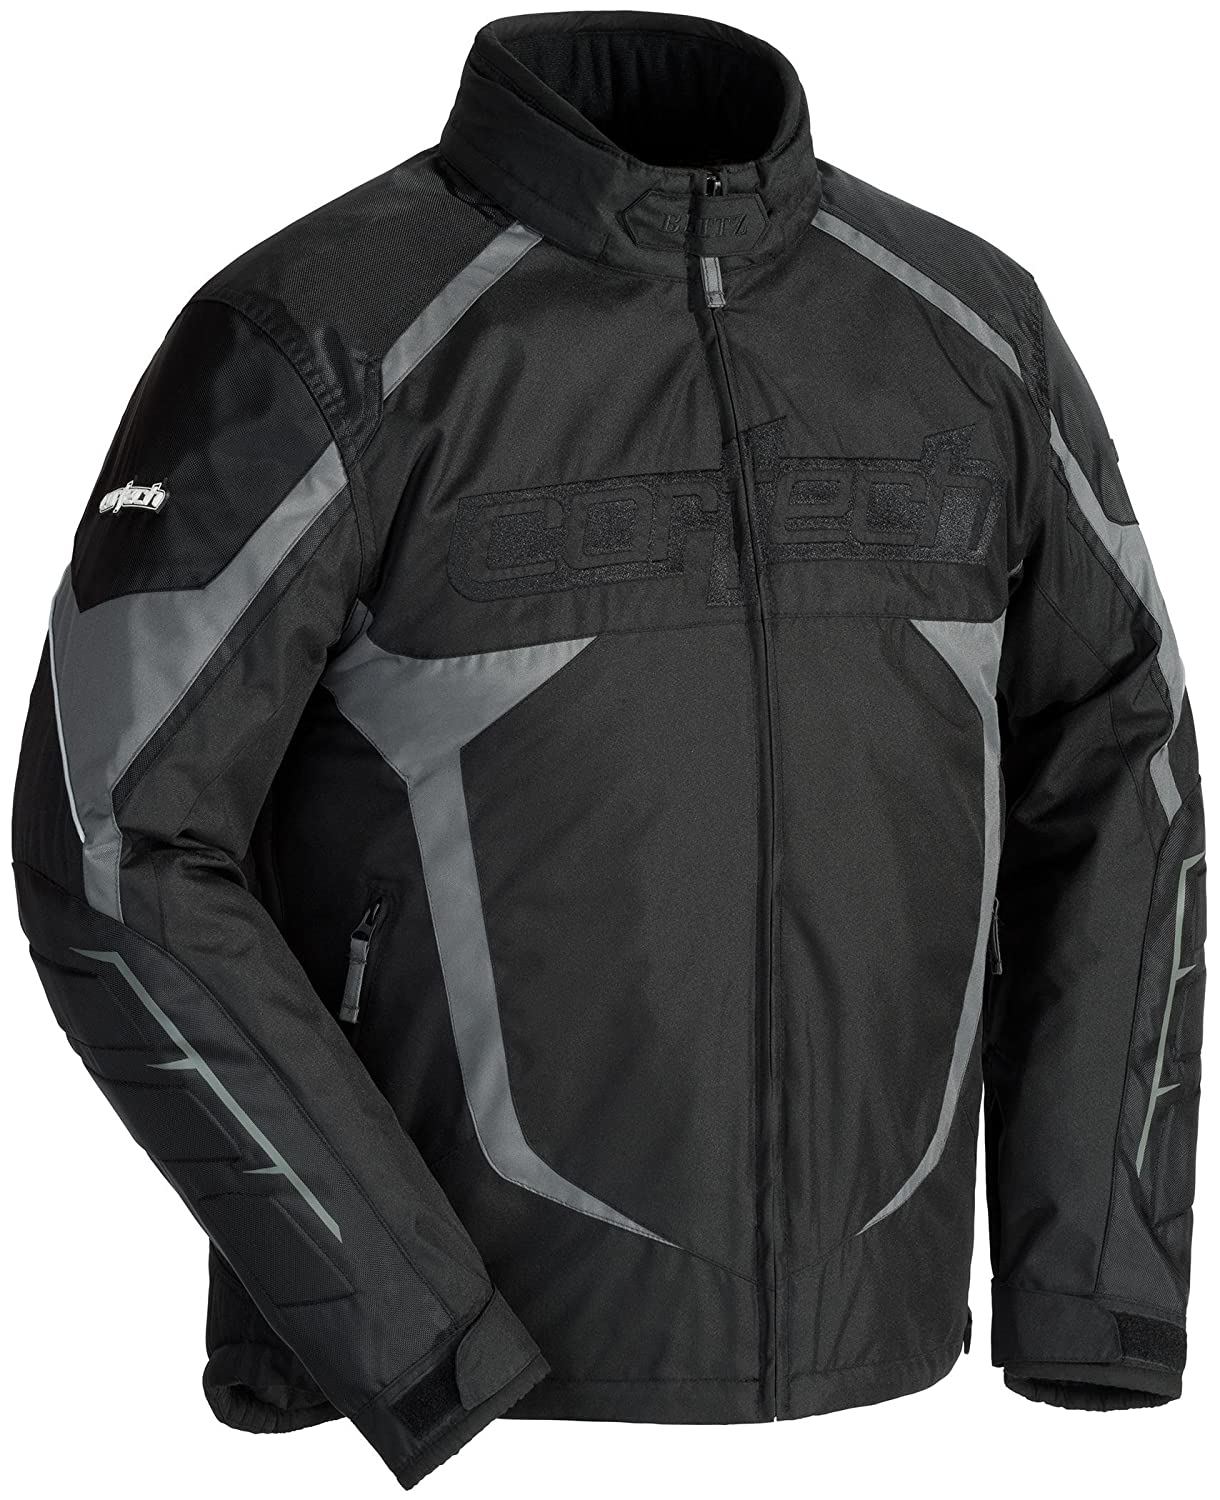 Cortech Blitz 3.0 Adult Mesh Snowboard Snowmobile Jacket - Black - Large 8927-0305-06